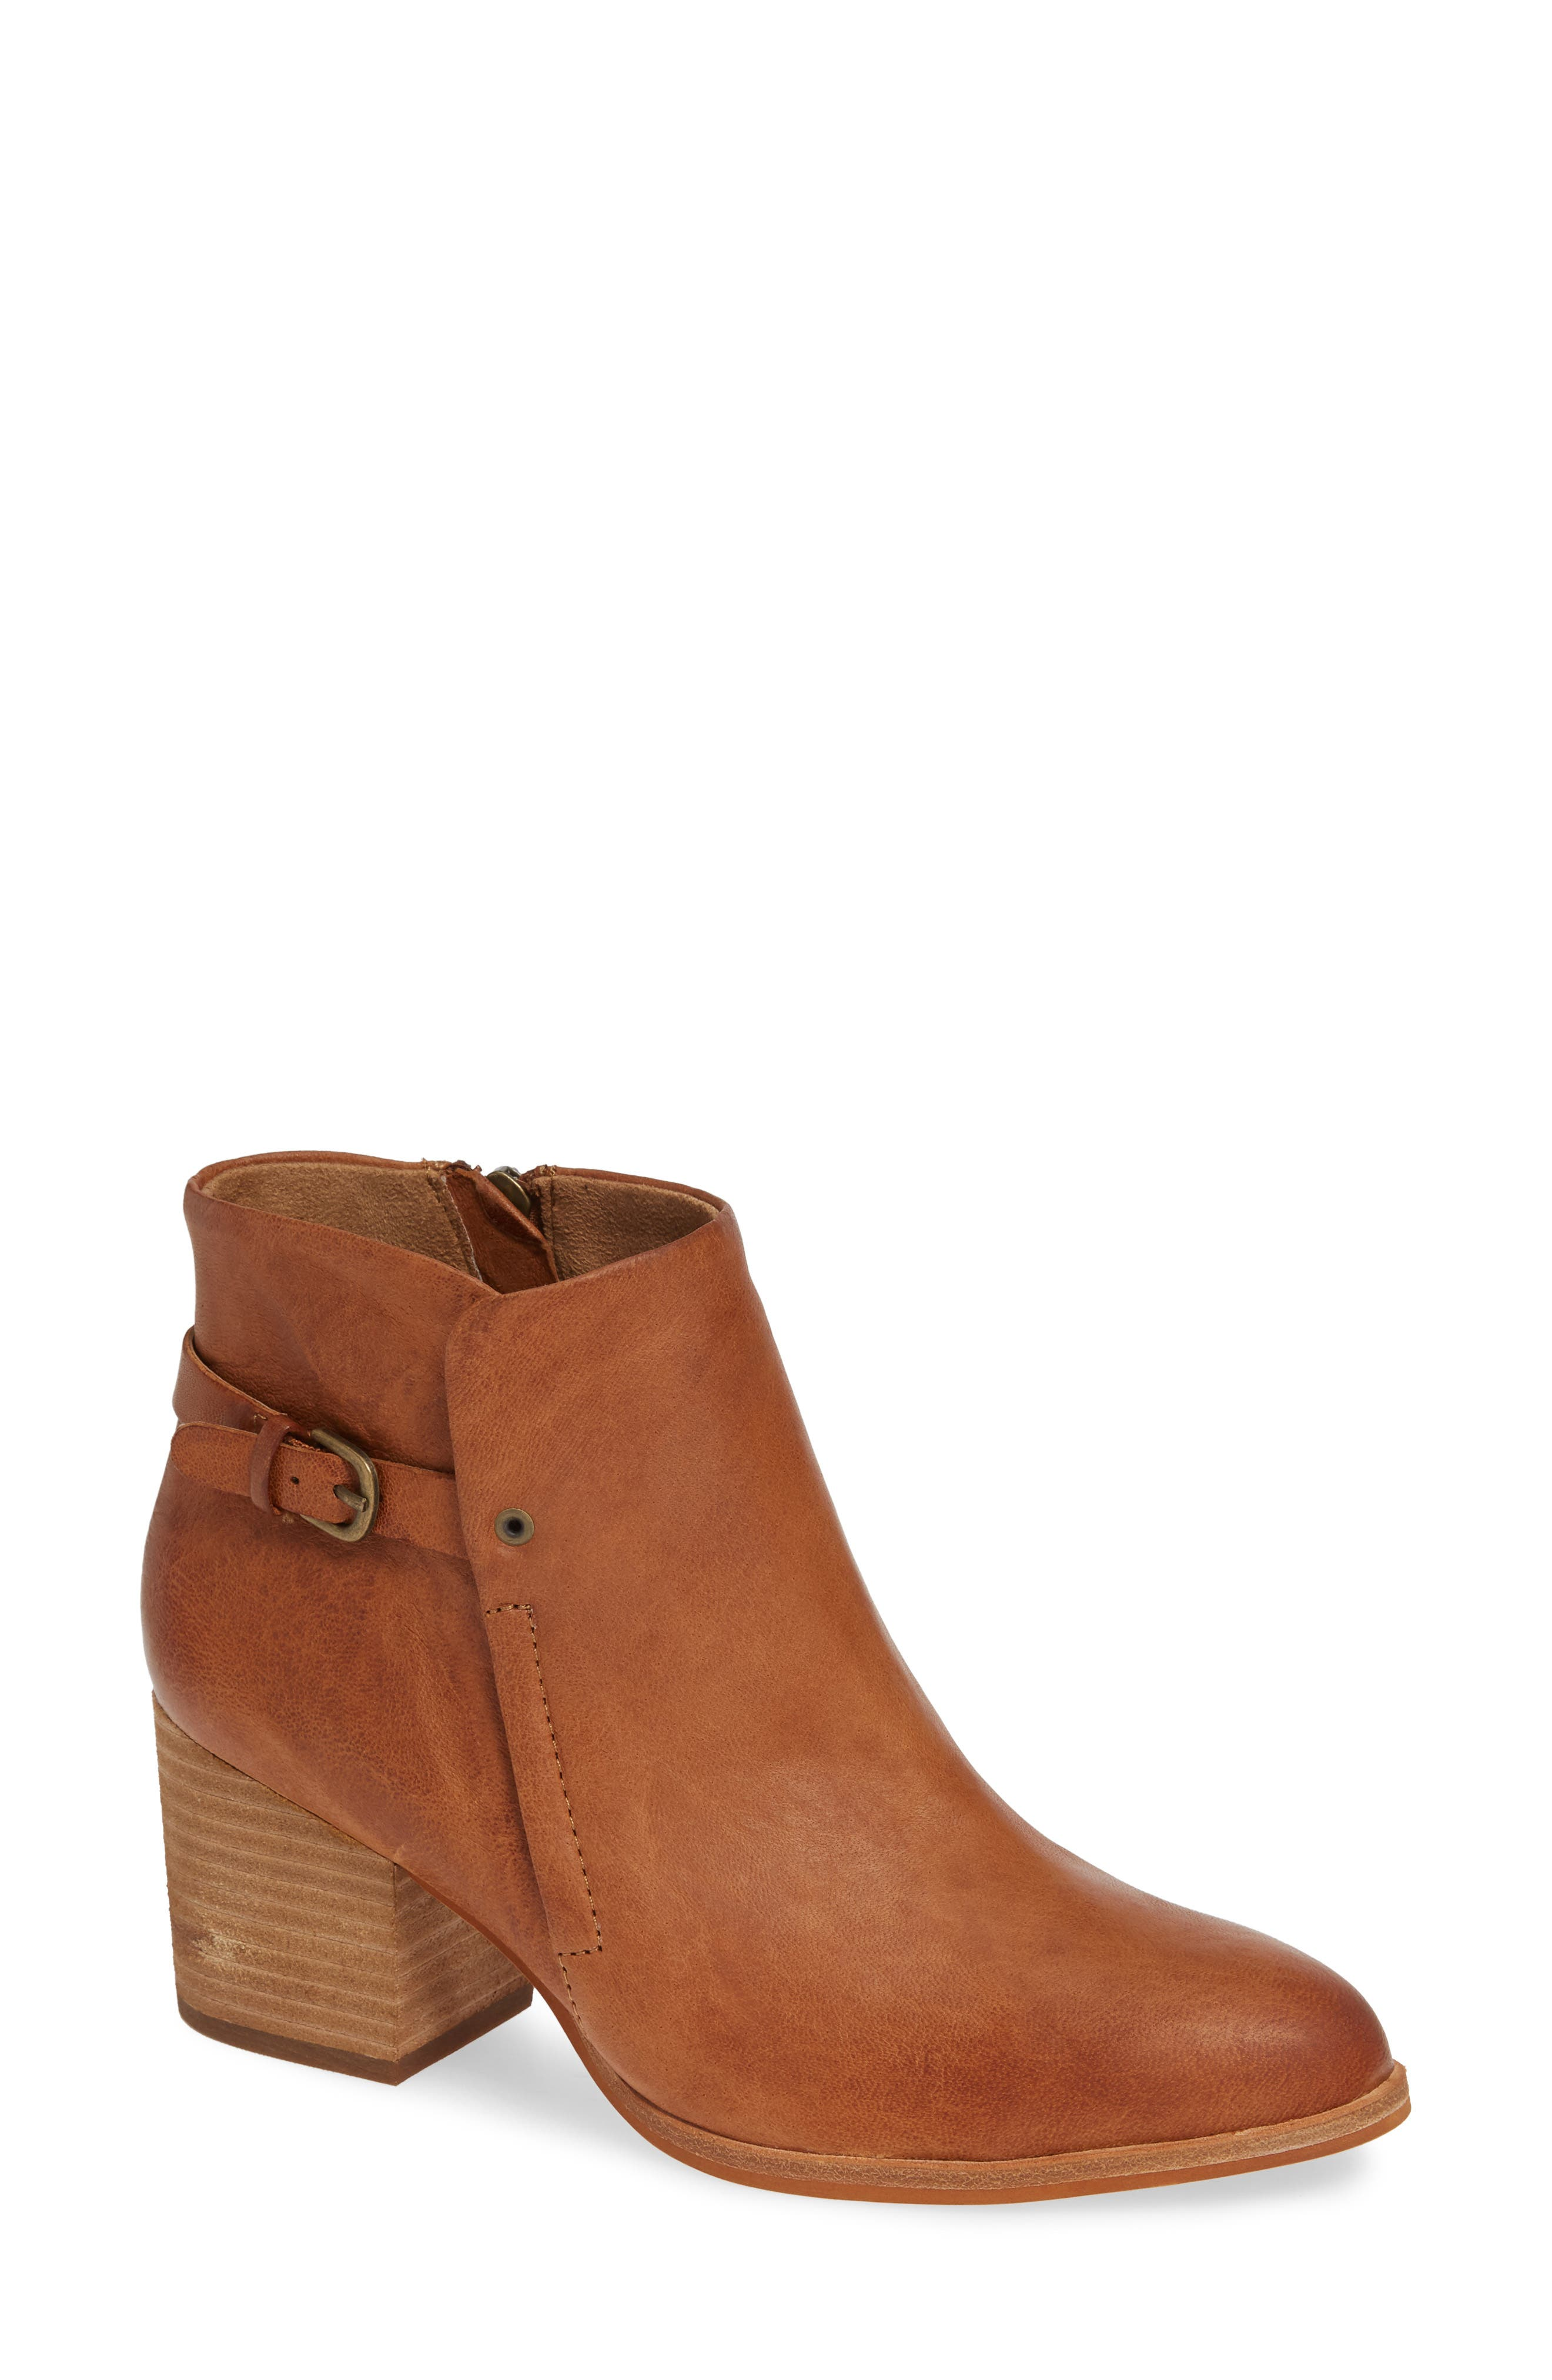 Isola Orlinda Block Heel Bootie- Brown